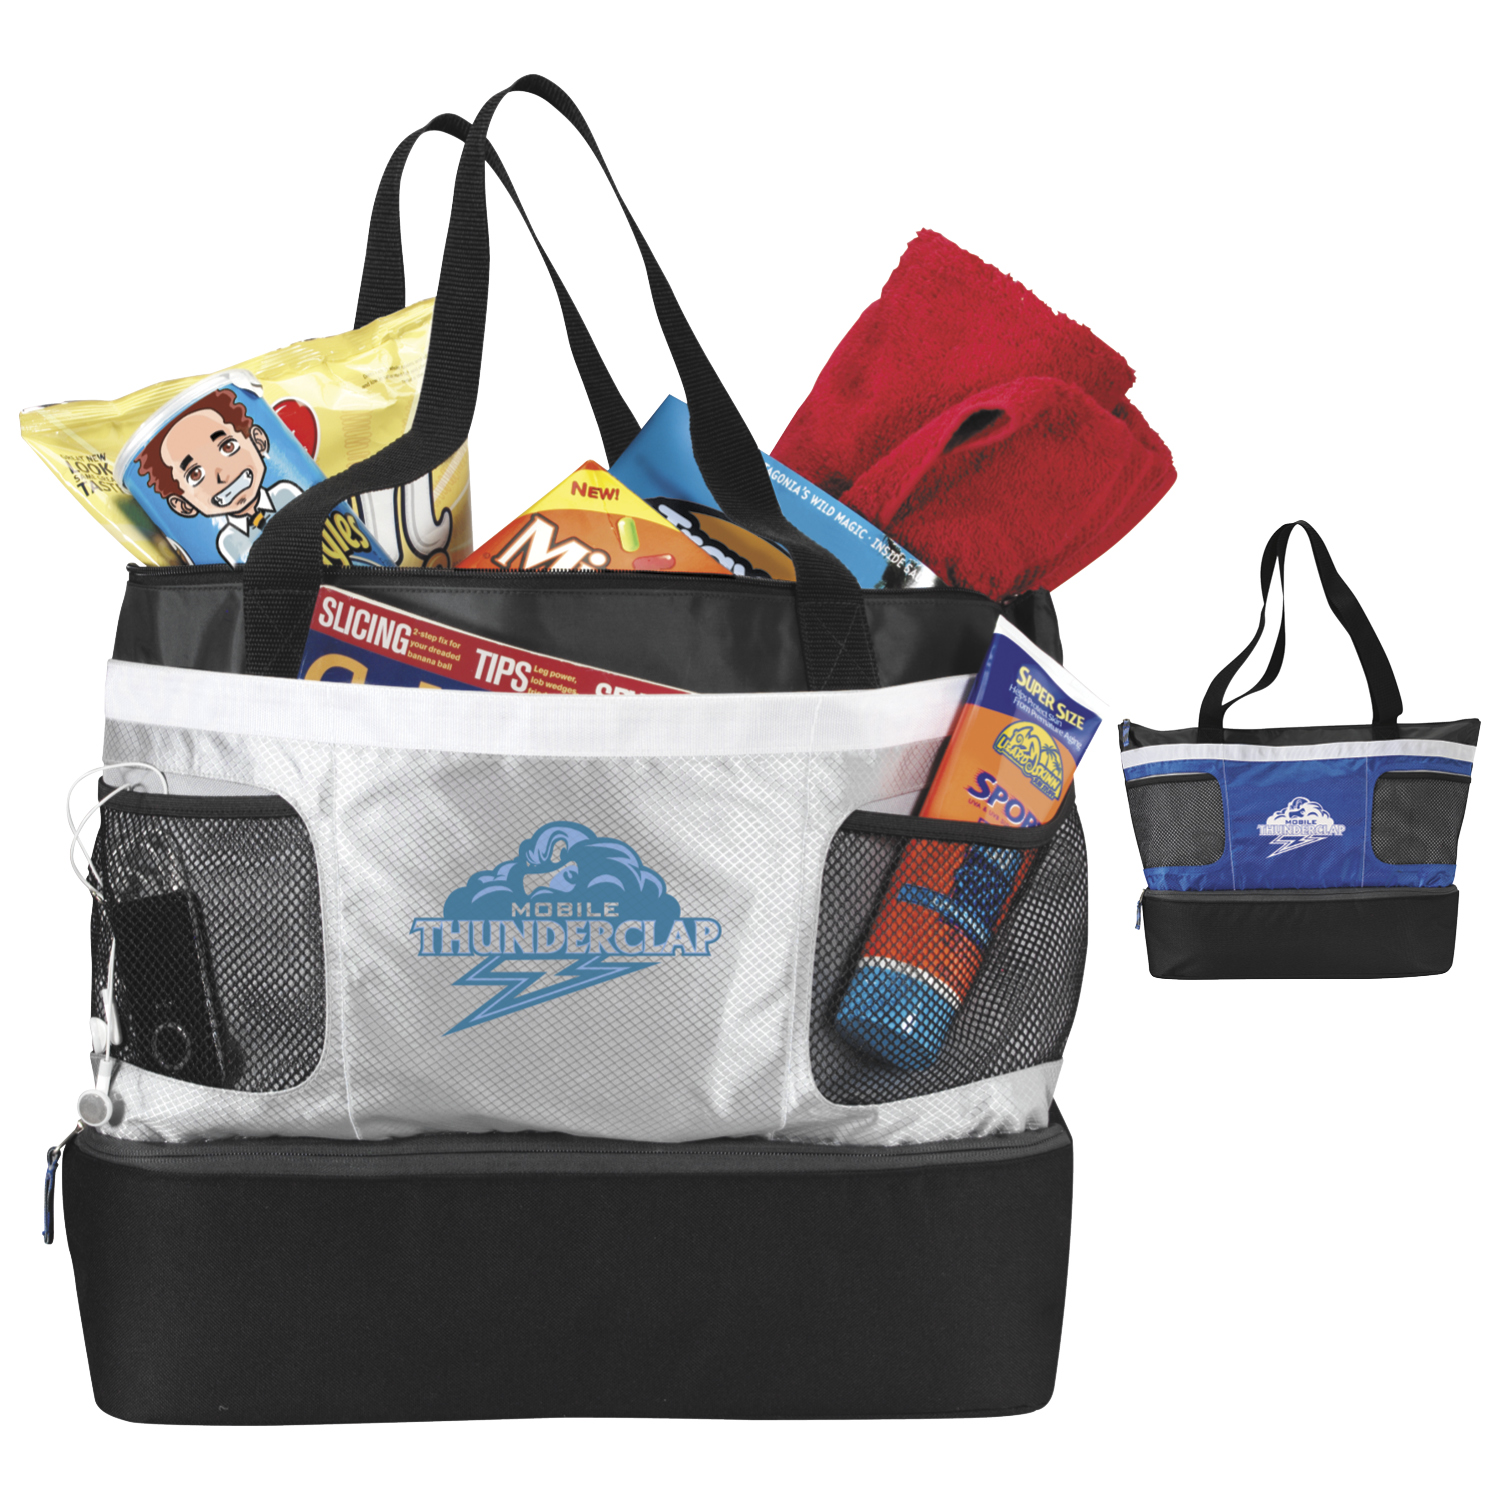 Atchison® AP7800 Double Decker Cooler Tote